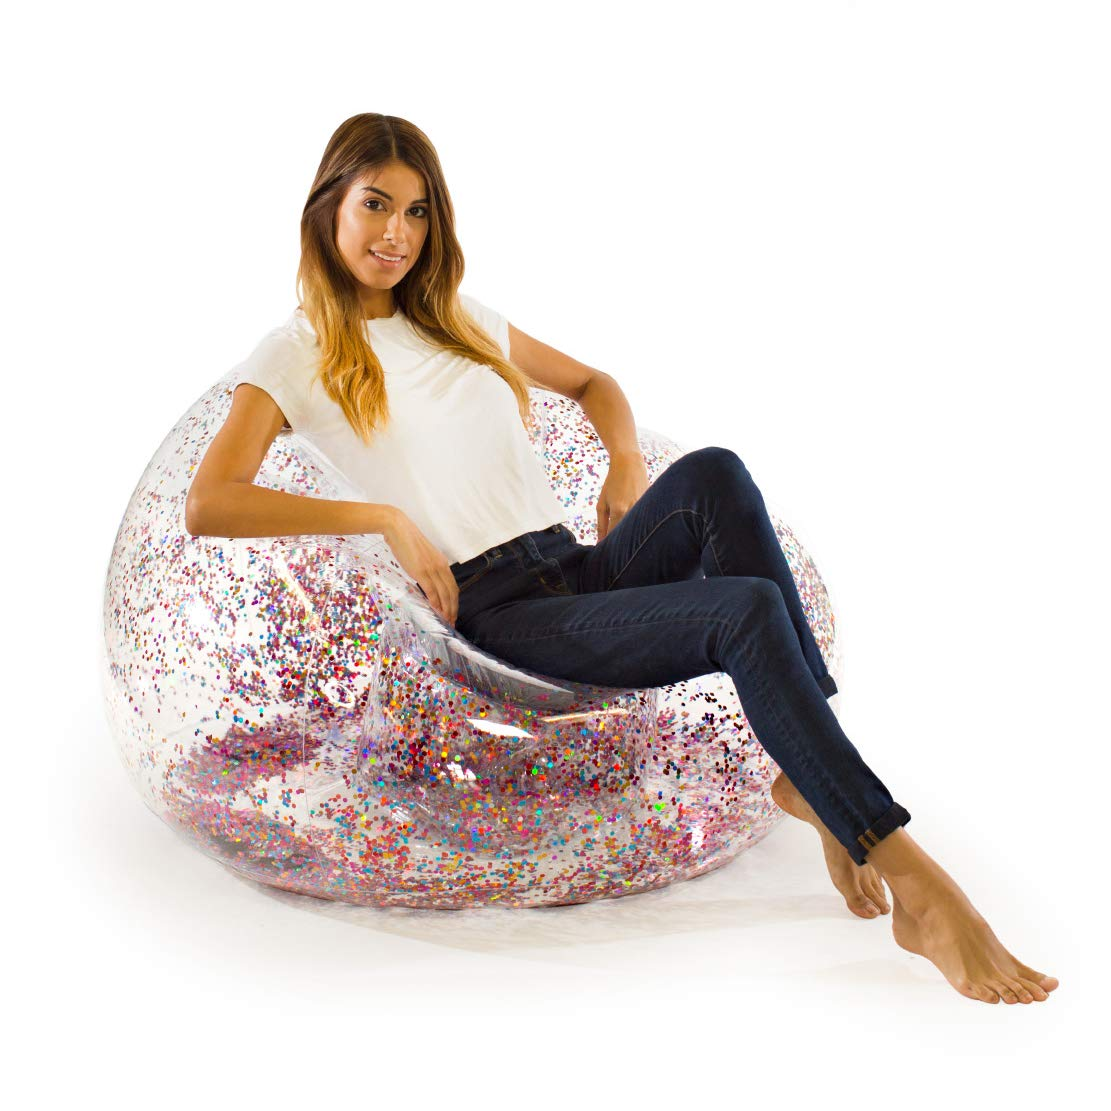 BloChair Inflatable Chair (Multicolored Glitter) by BloChair